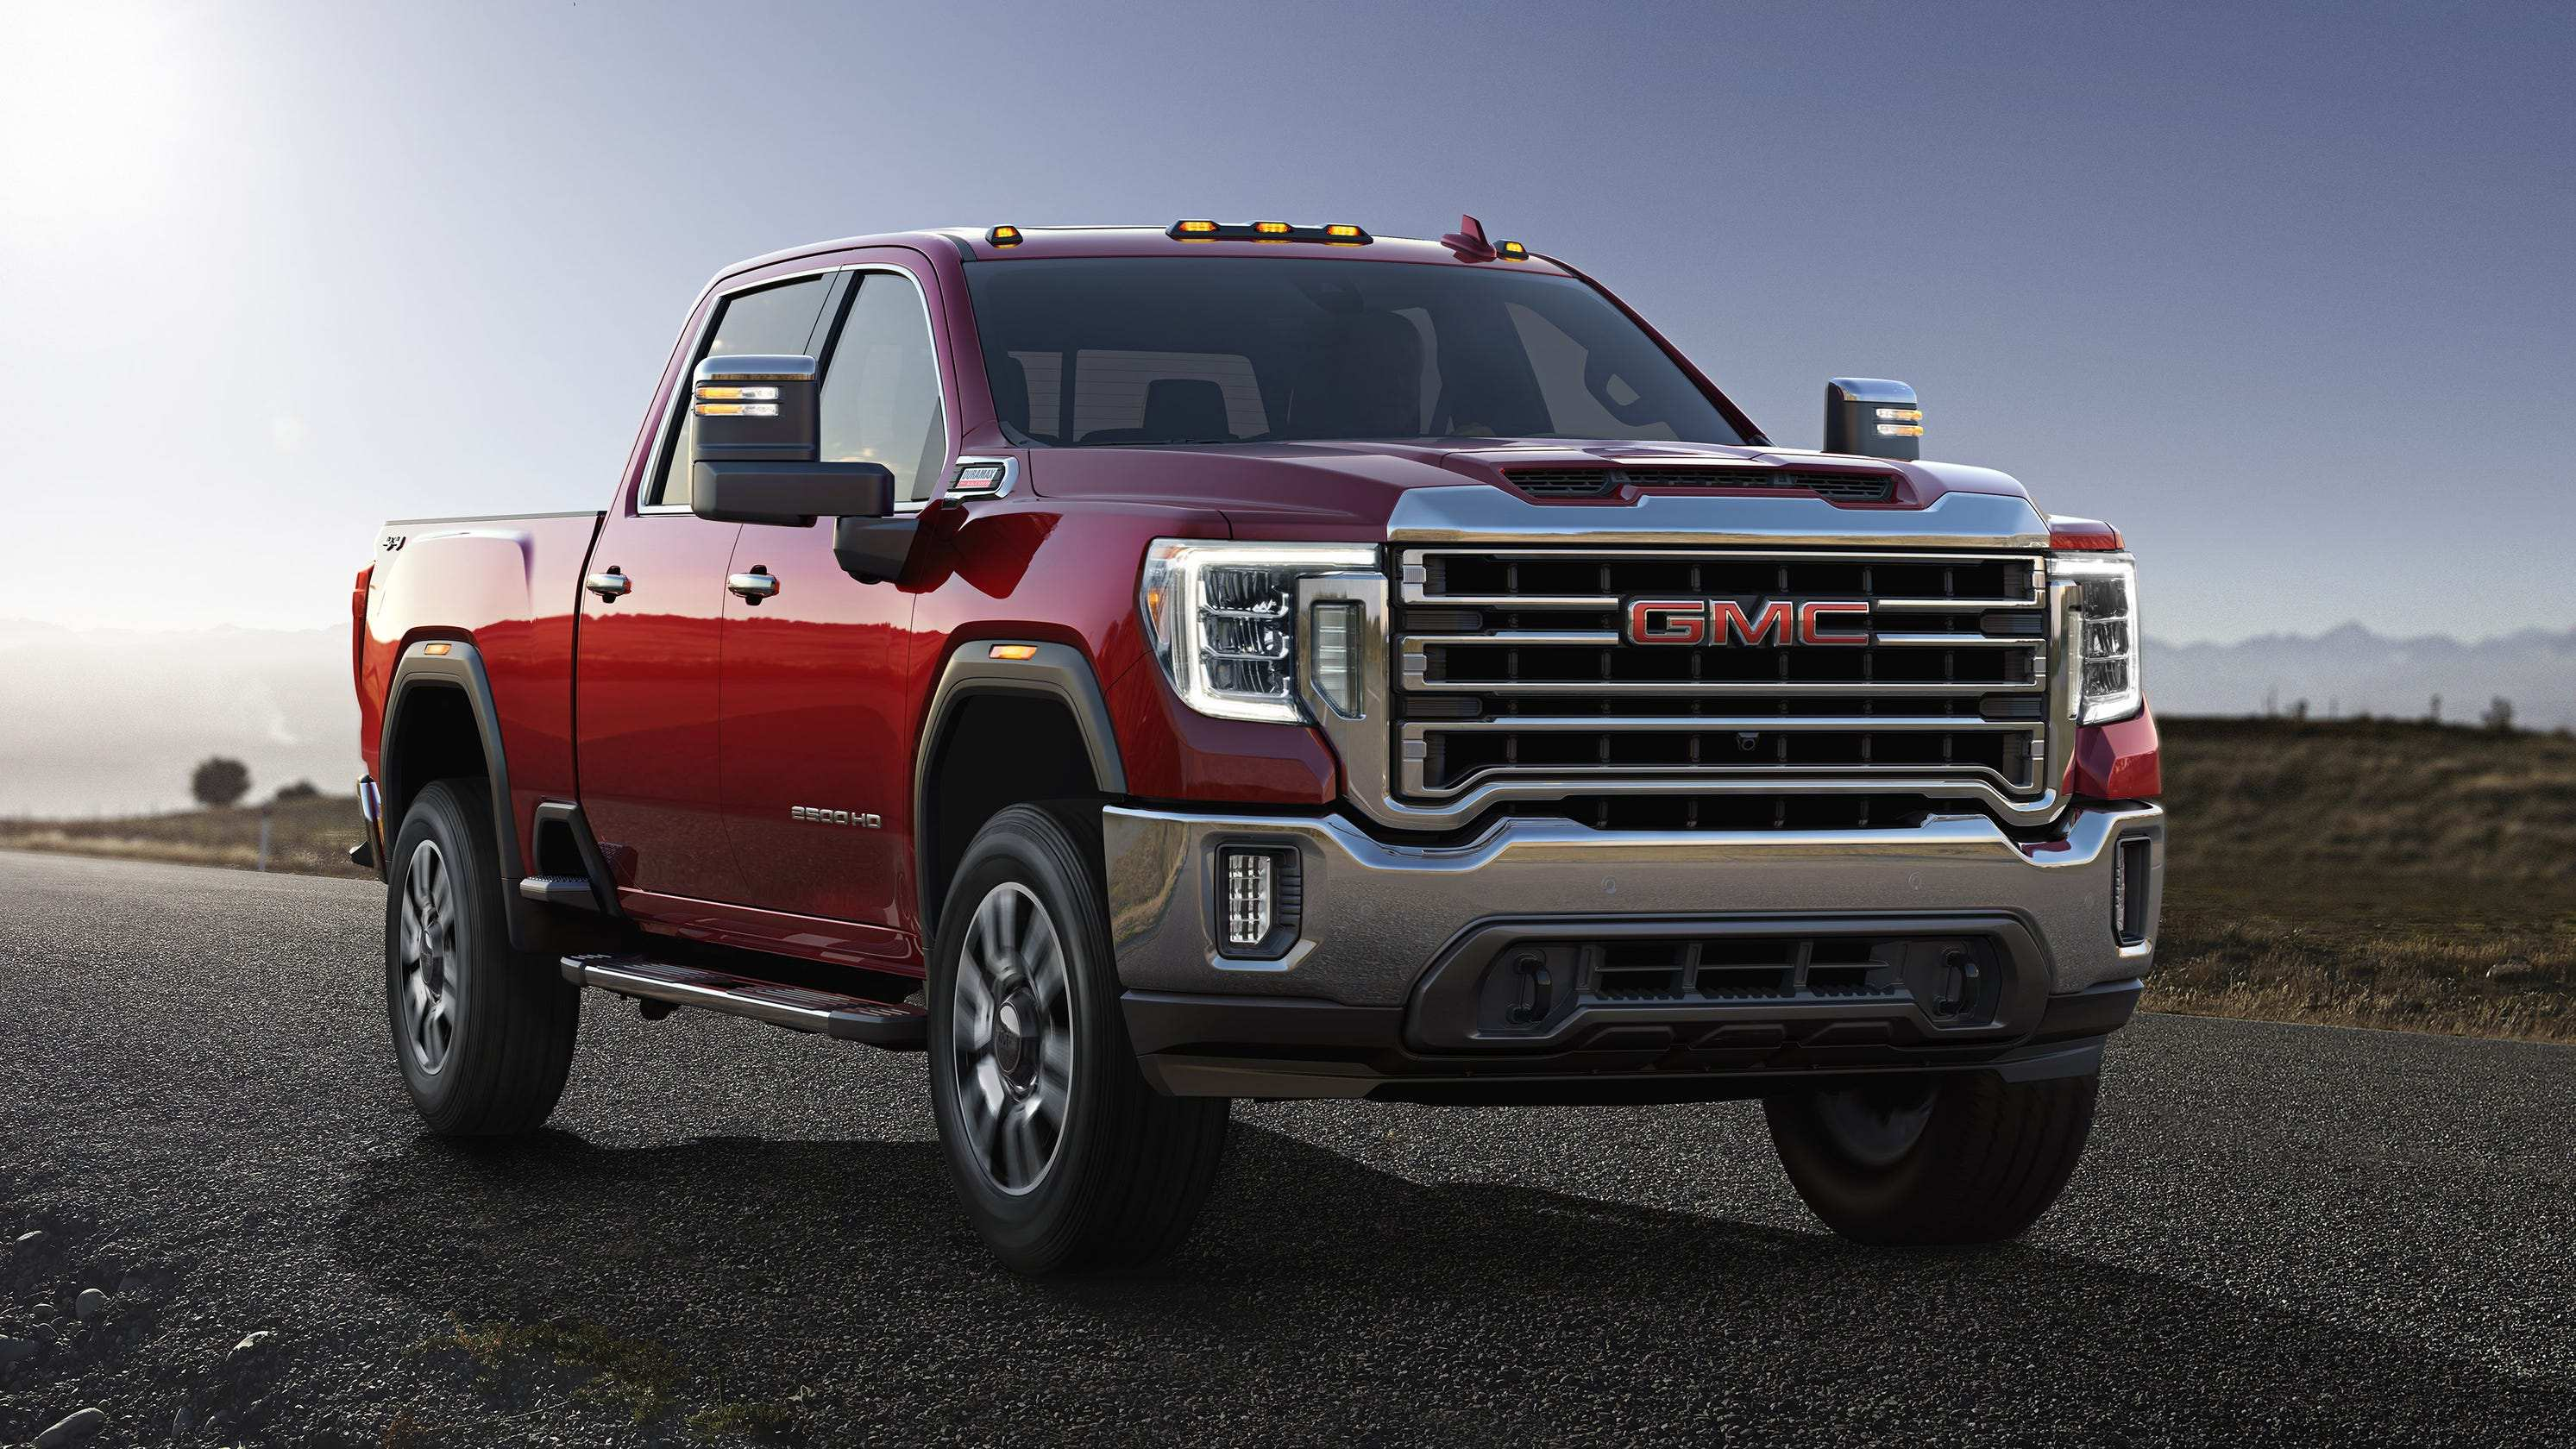 81 New Gmc At4 Diesel 2020 Concept by Gmc At4 Diesel 2020